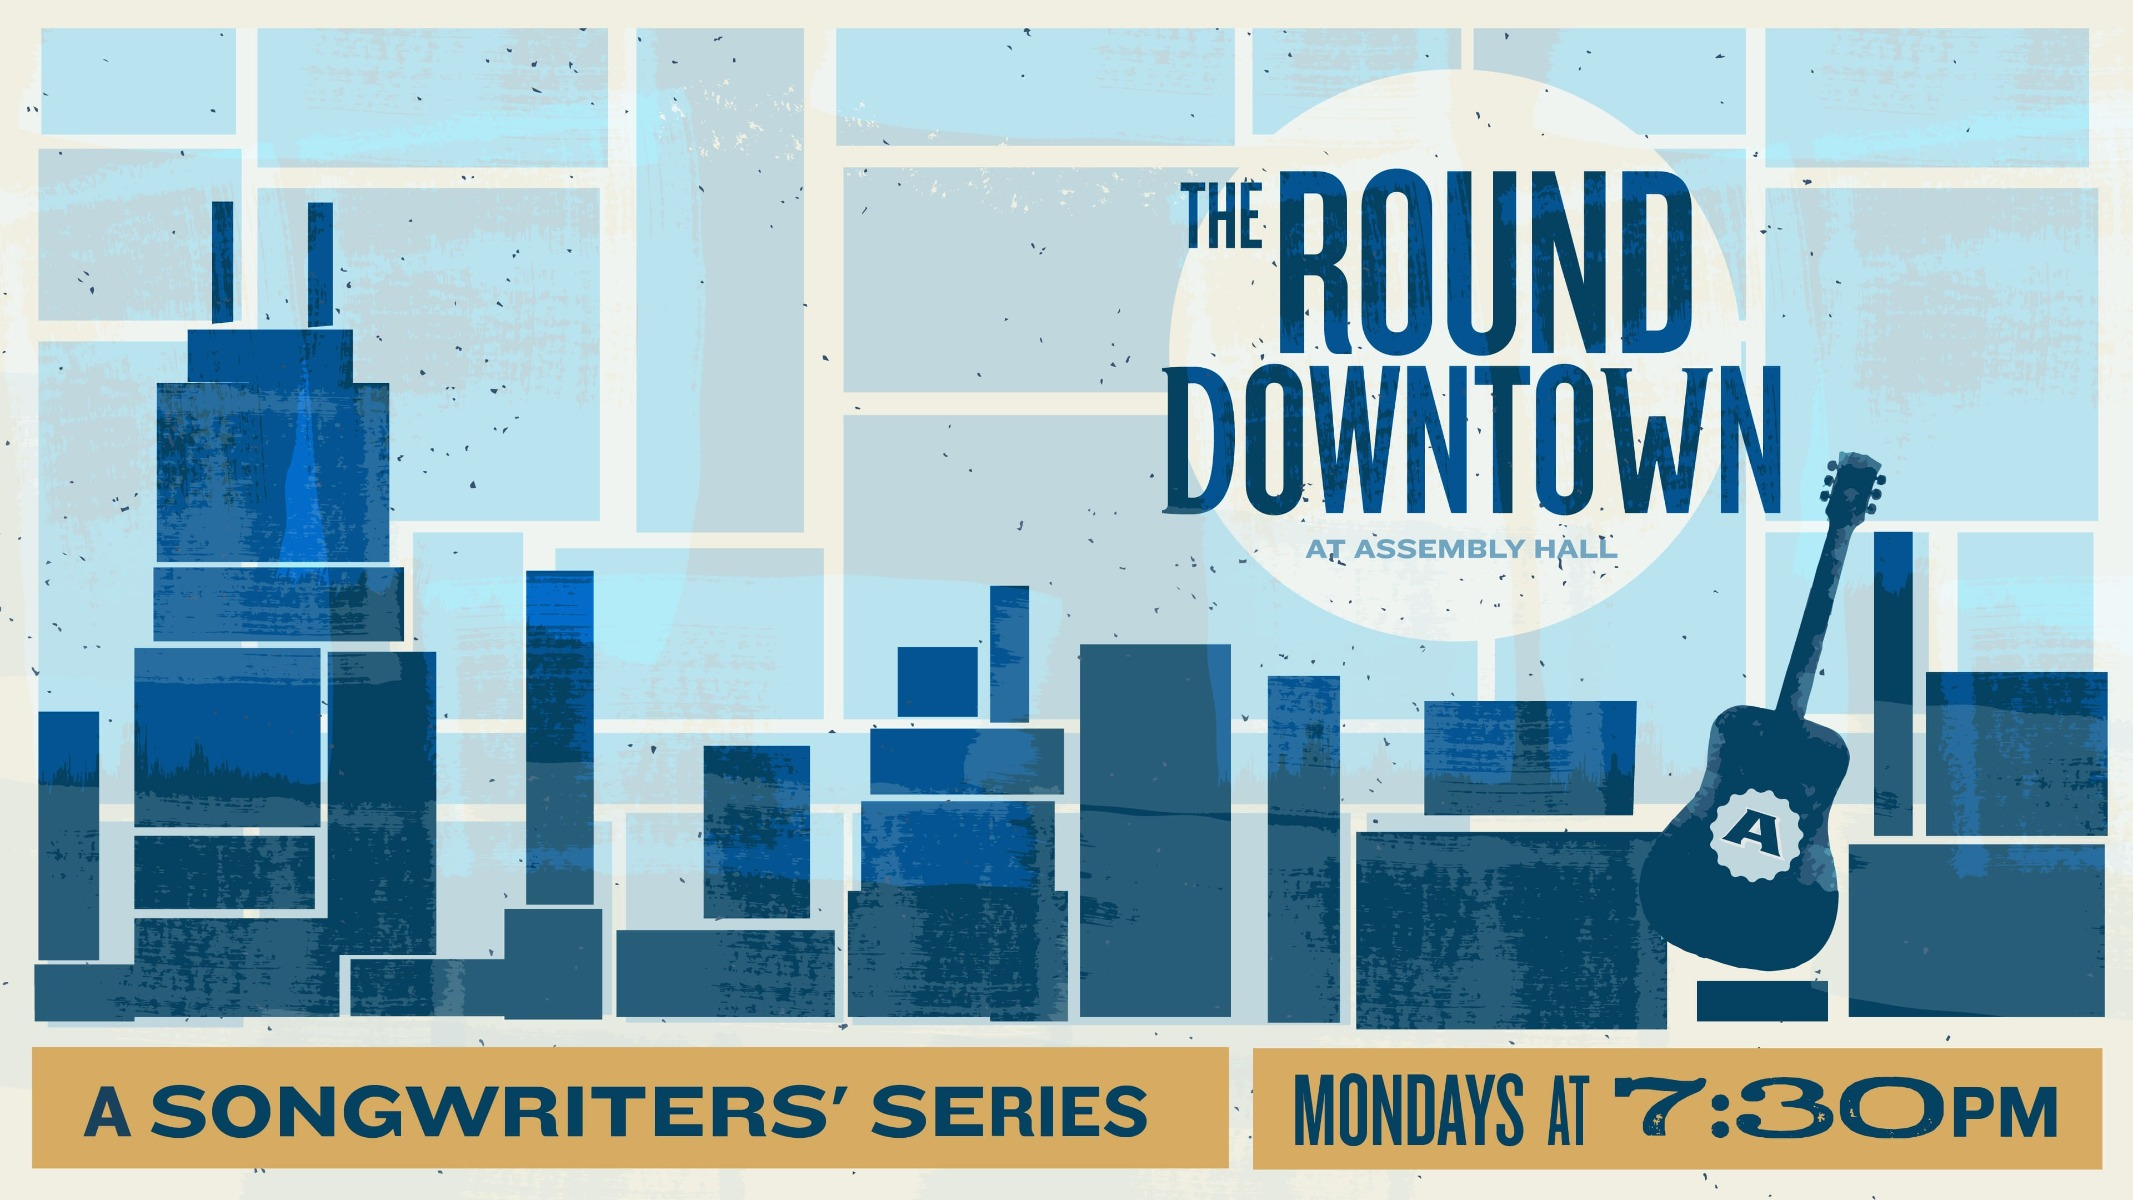 Promo image of The Round Downtown